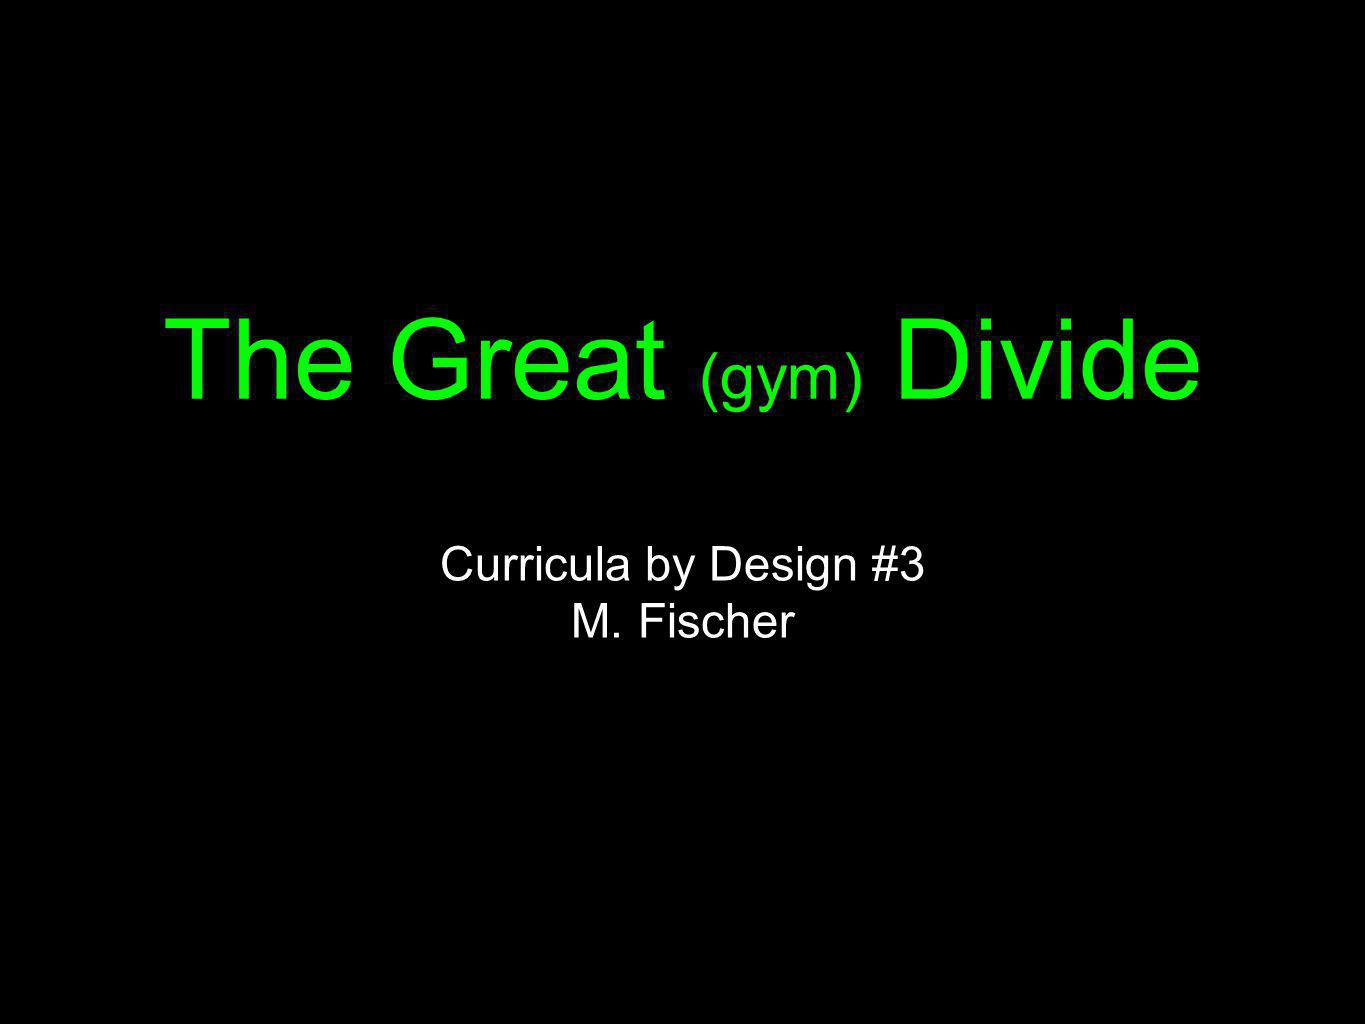 The Great (gym) Divide Curricula by Design #3 M. Fischer